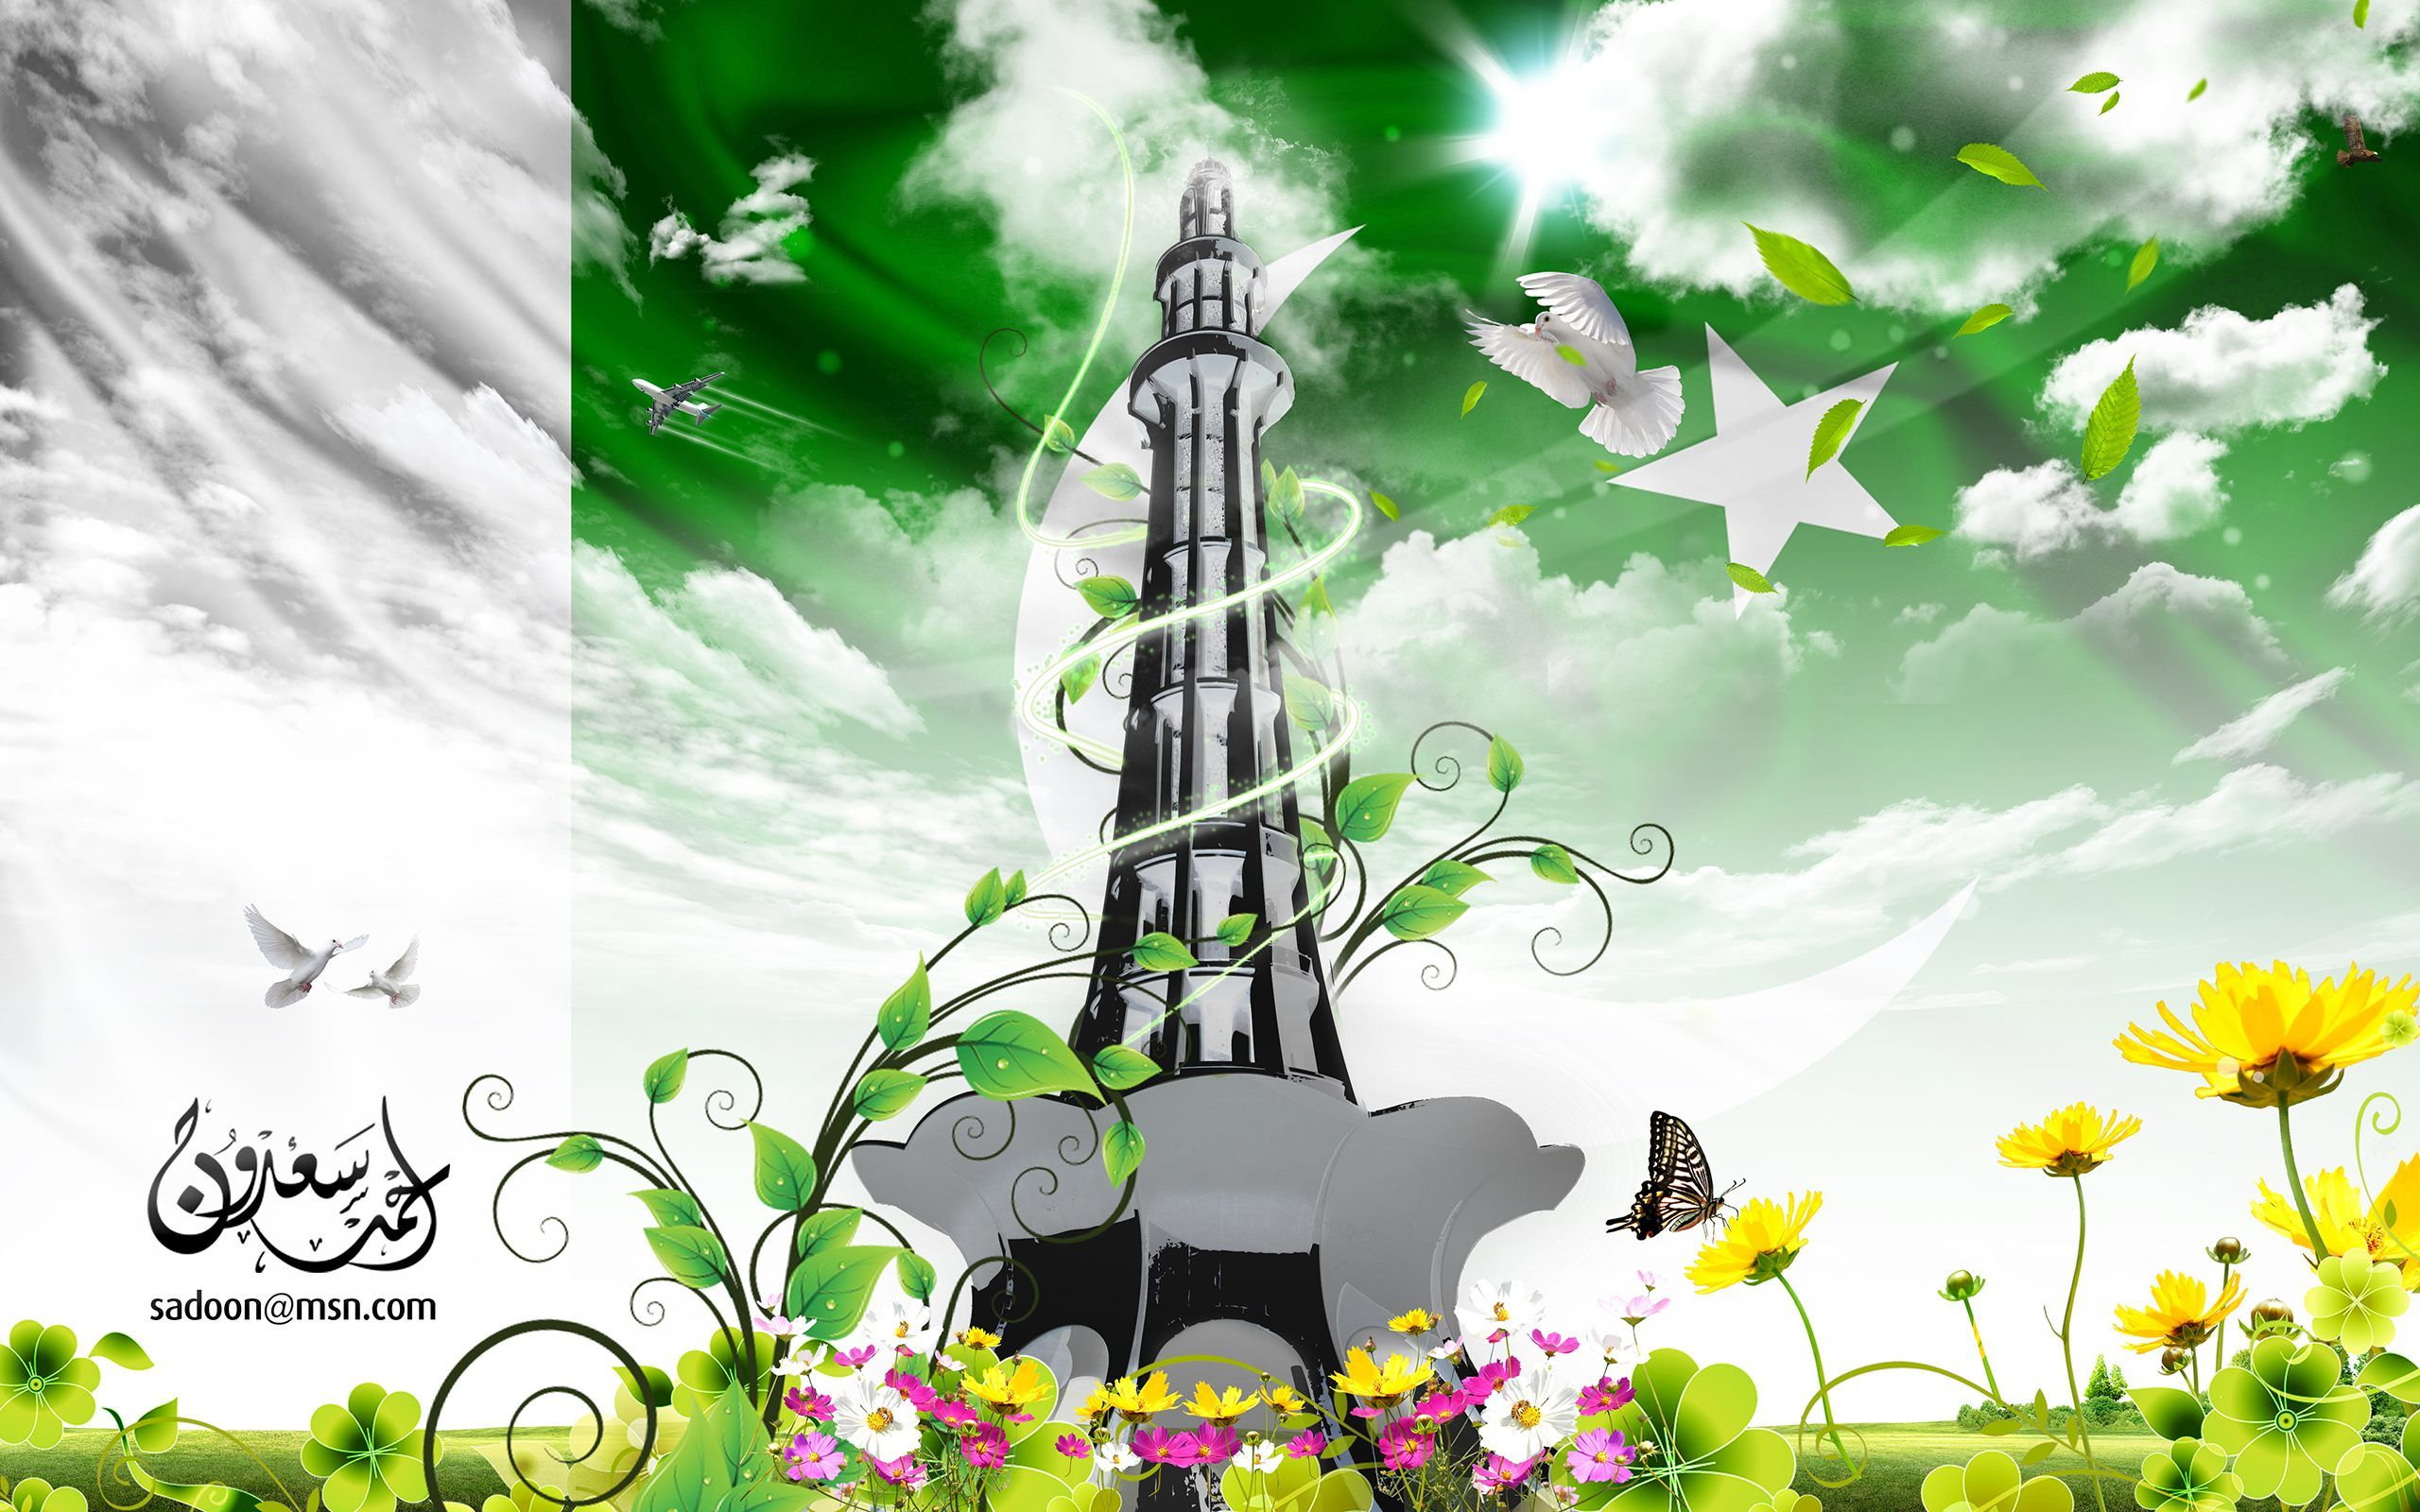 Pakistan Flag Wallpapers Android Apps on Google Play HD Wallpapers Pinterest Pakistan flag ...